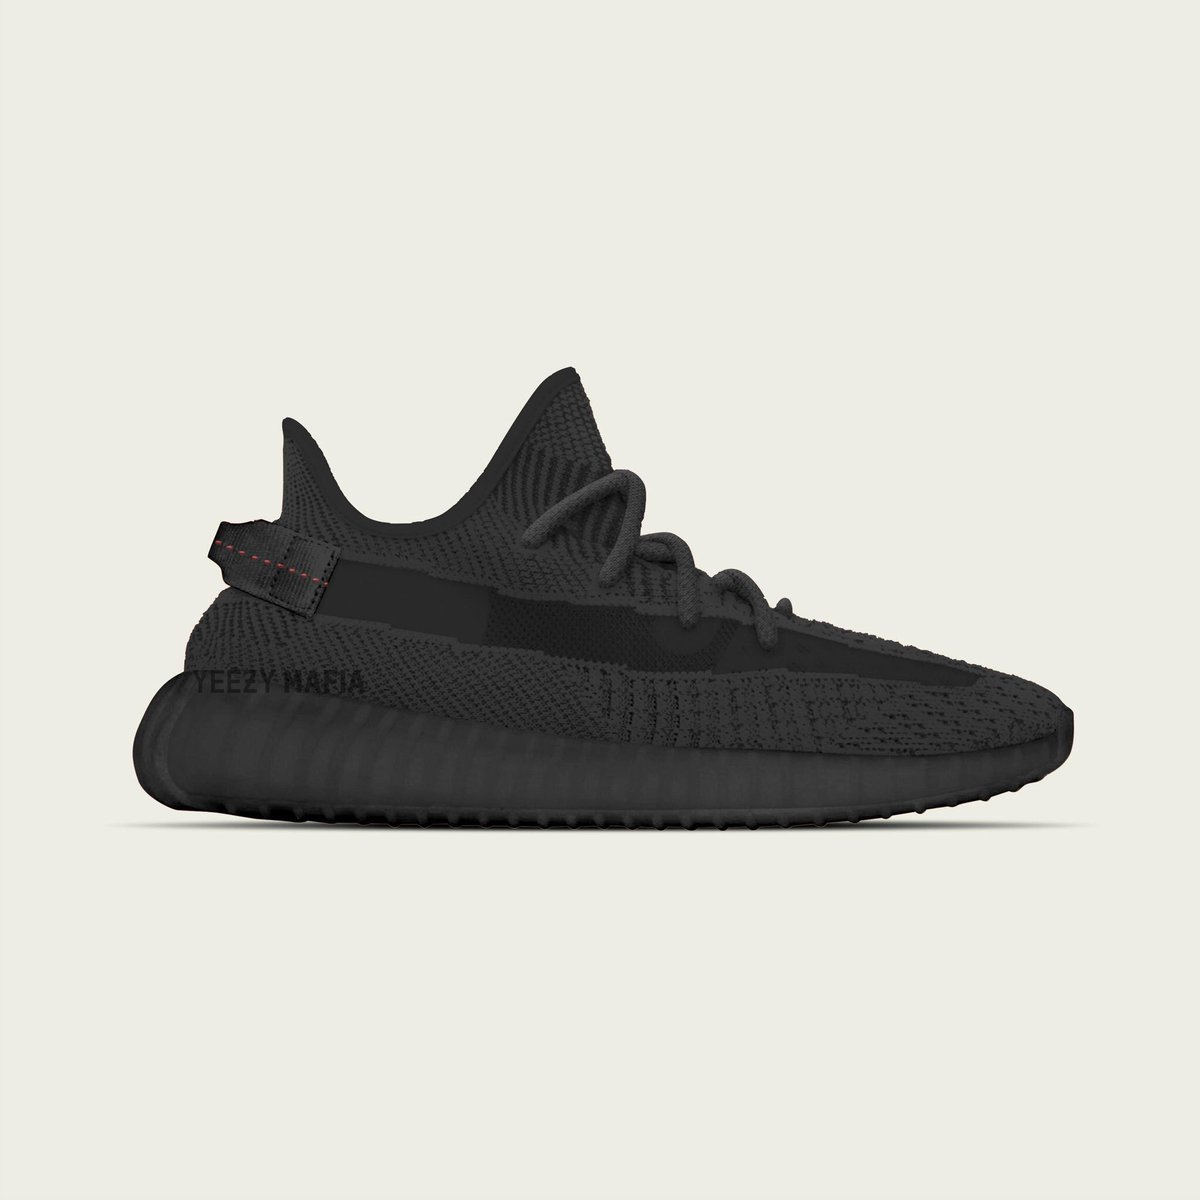 YEEZY BOOST 350 V2BLACKCOMING SOONCOP🔥 OR DROP🚮?